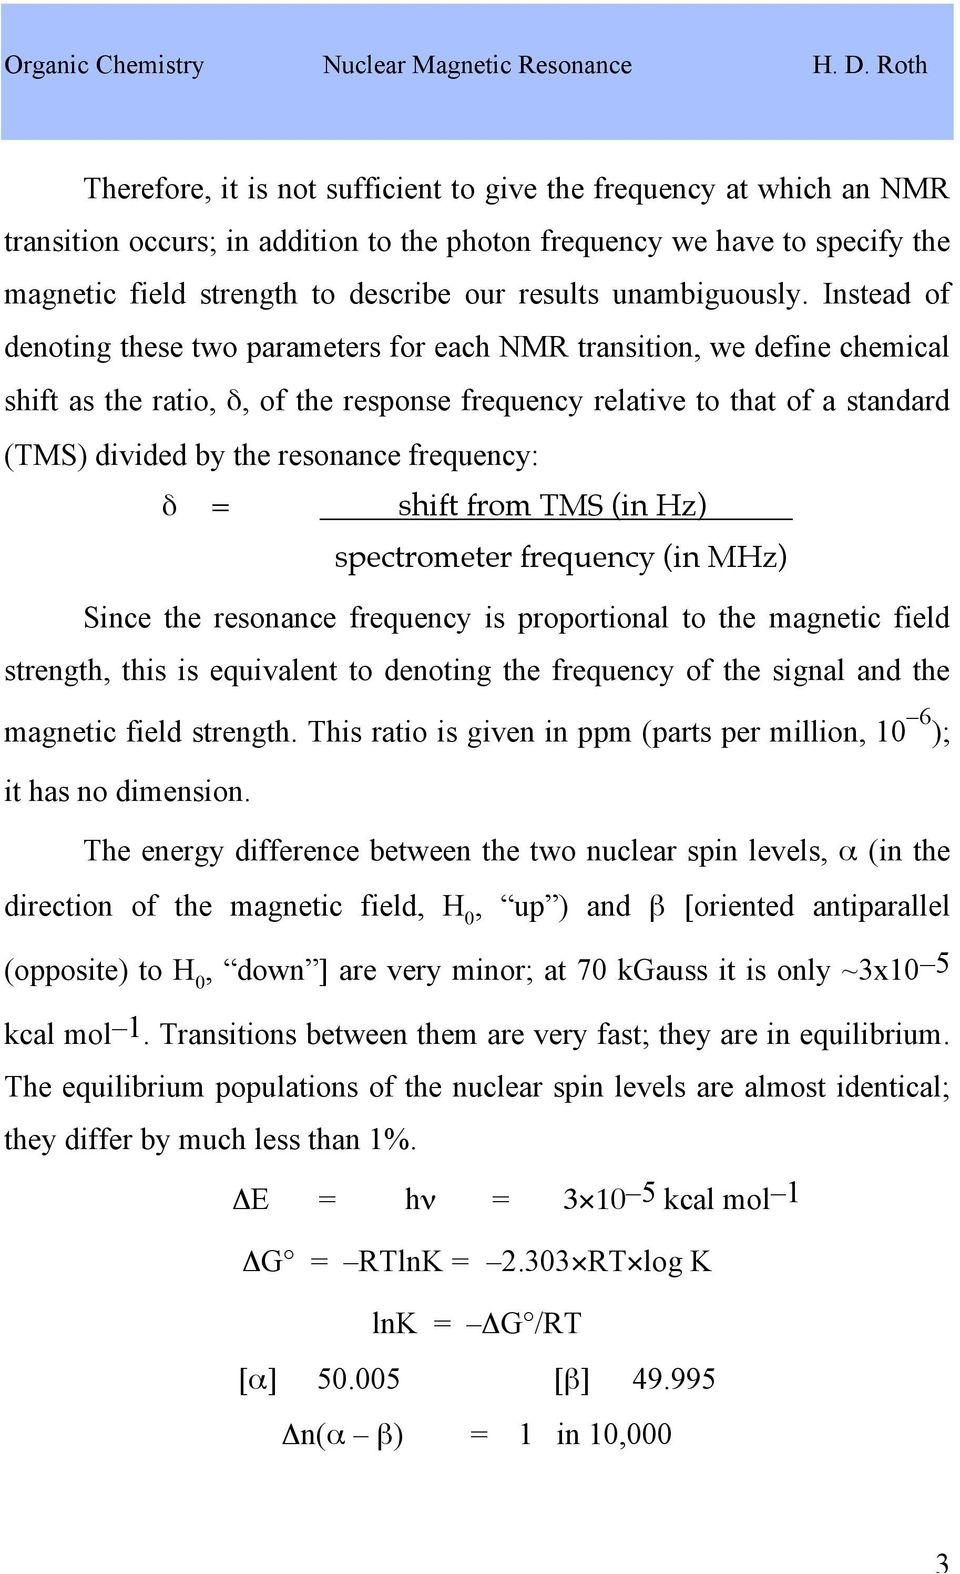 Instead of denoting these two parameters for each NMR transition, we define chemical shift as the ratio, δ, of the response frequency relative to that of a standard (TMS) divided by the resonance